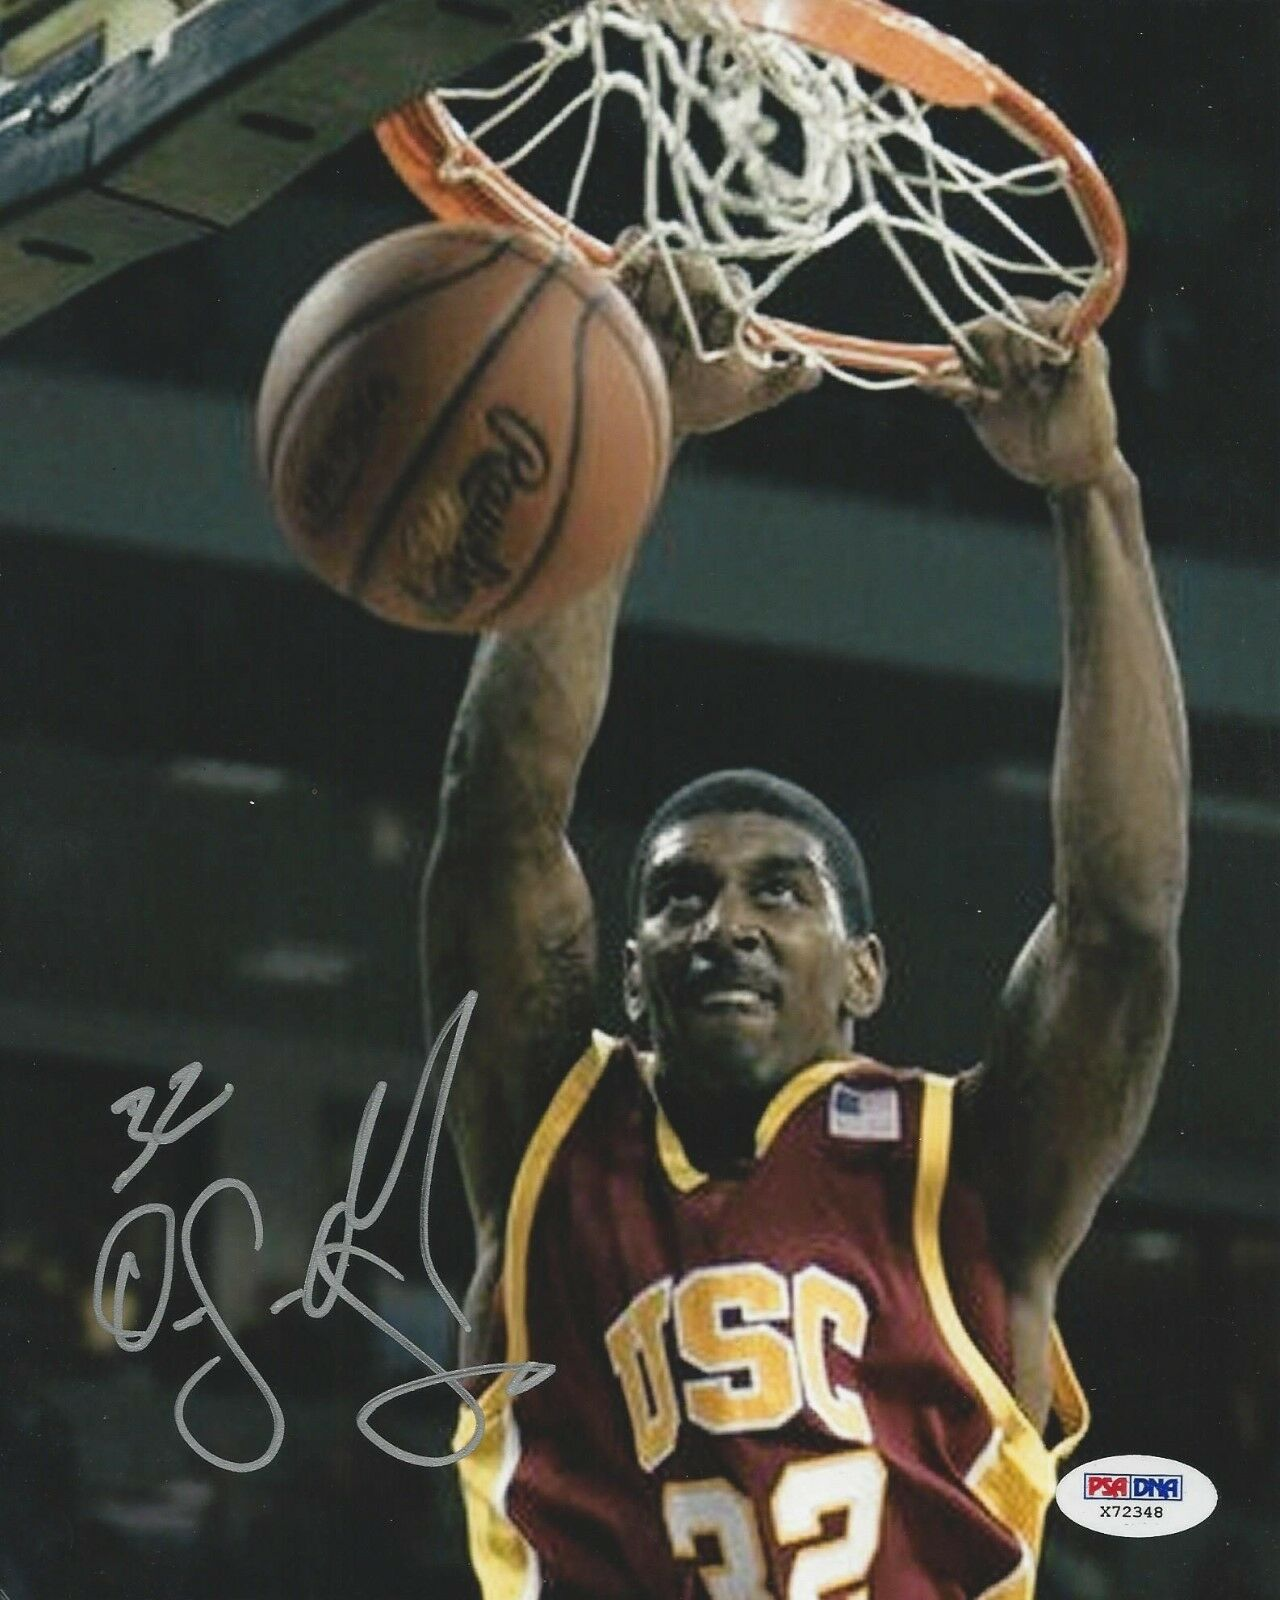 Oj Mayo USC Trojans Signed 8x10 Photo PSA/DNA #X72348